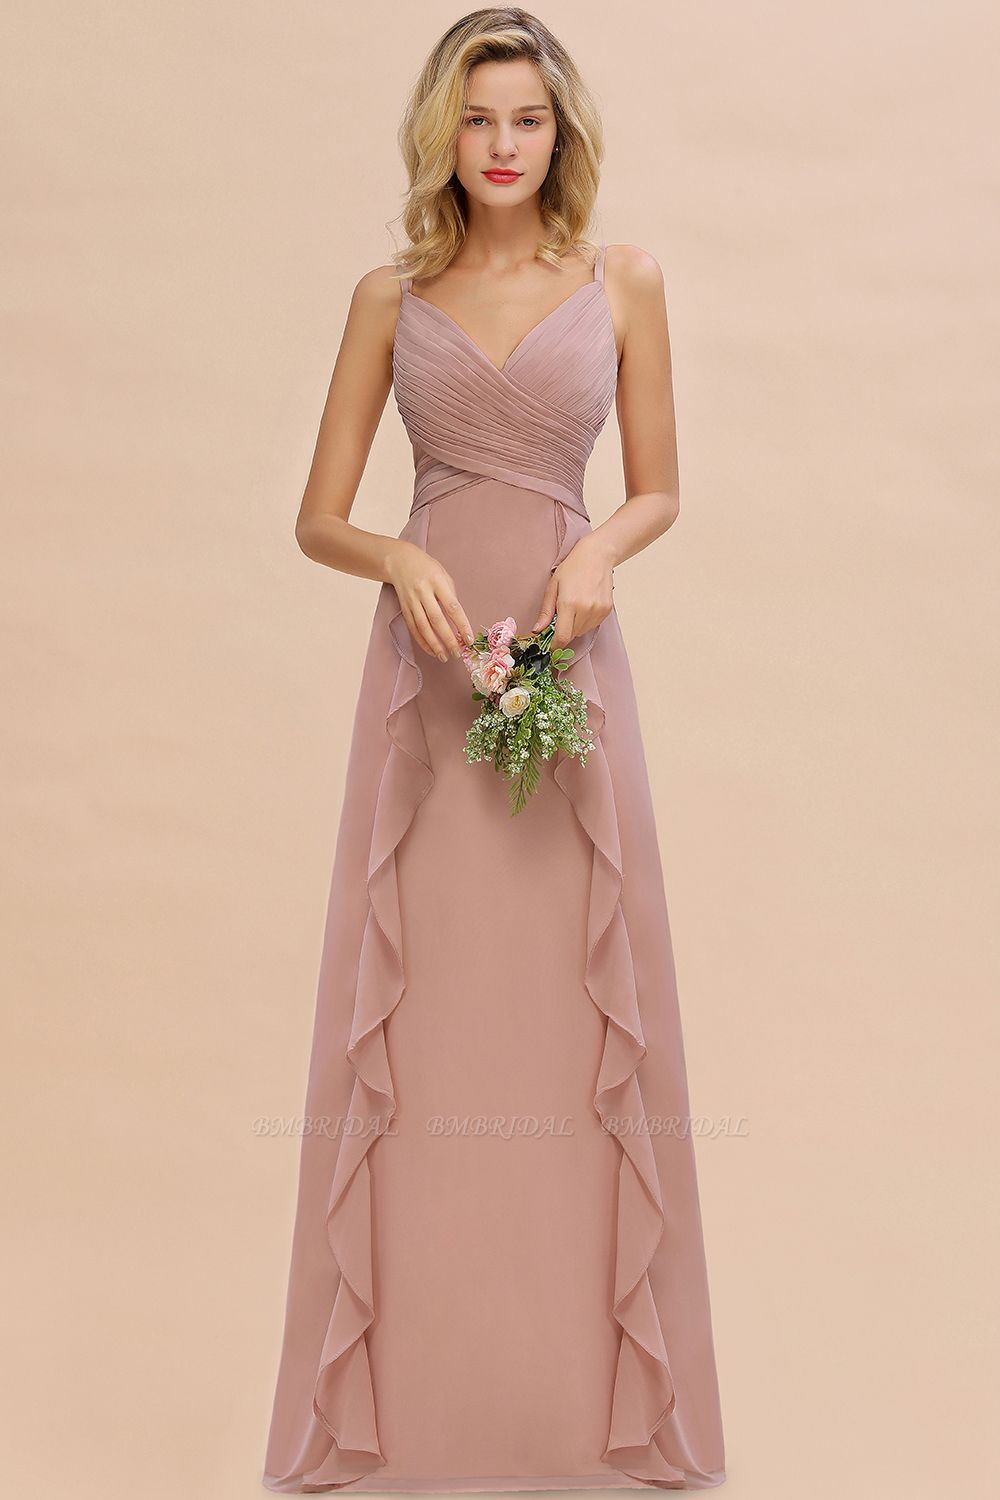 Three Tips For Choosing the Right Bridesmaid Dresses